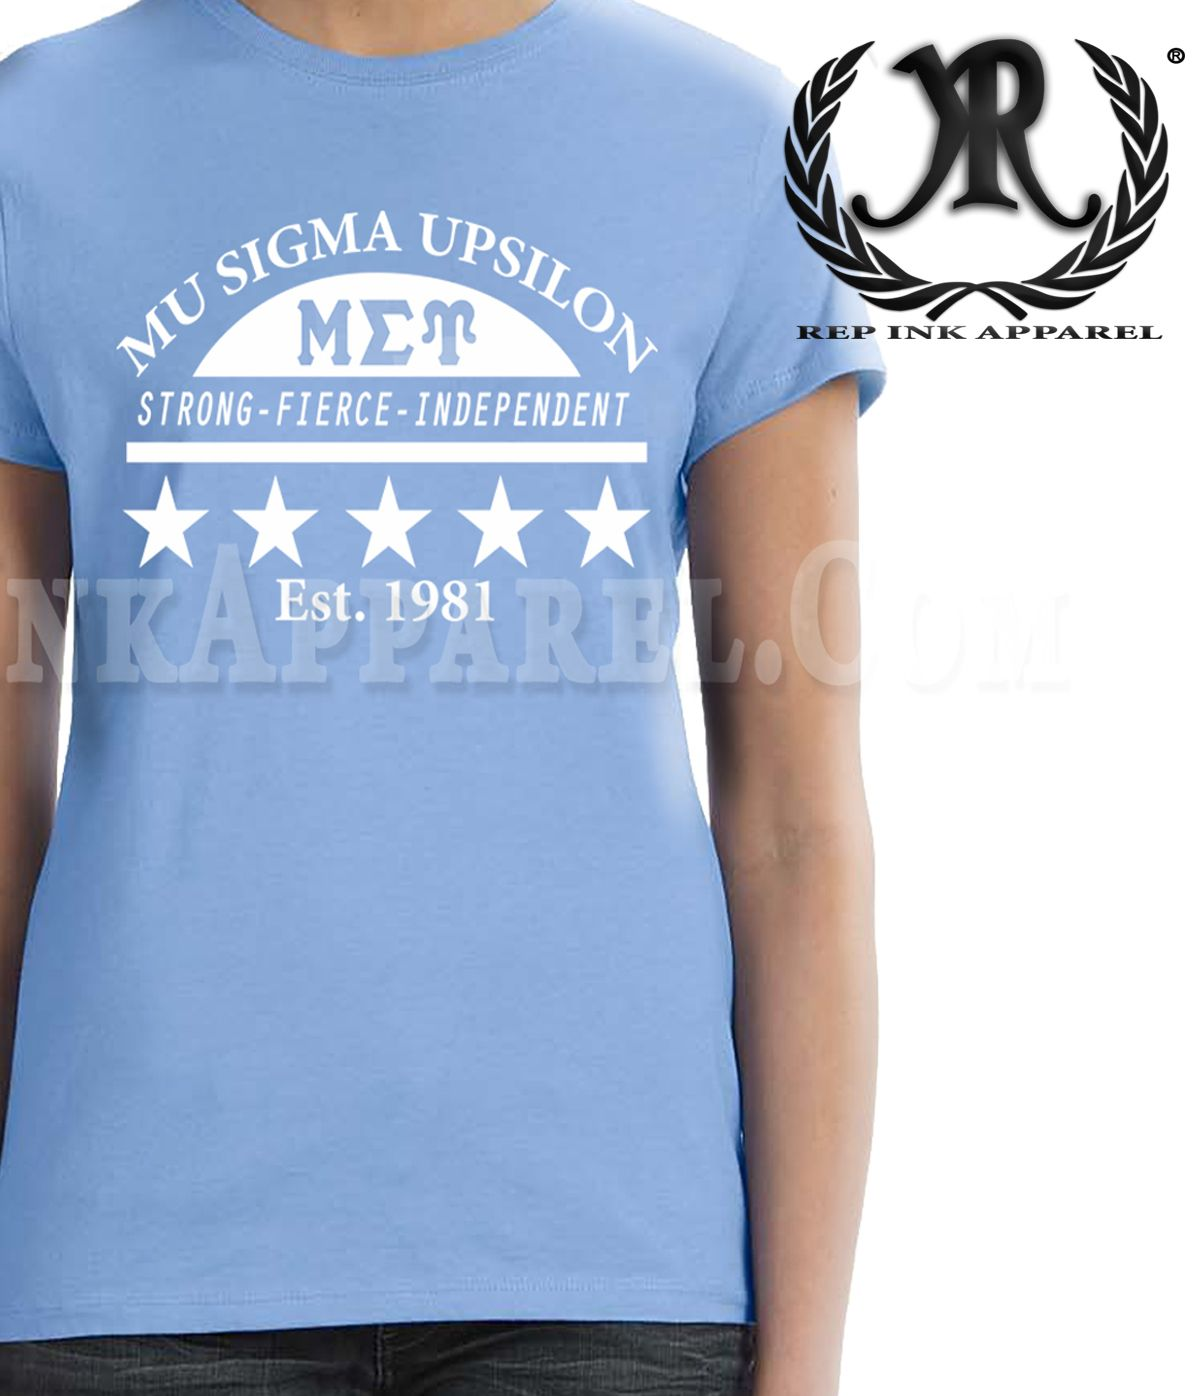 Mu Sigma Upsilon (MSU) Hoodie 1981Check out all of our designs and organizations at repinkapparel.com